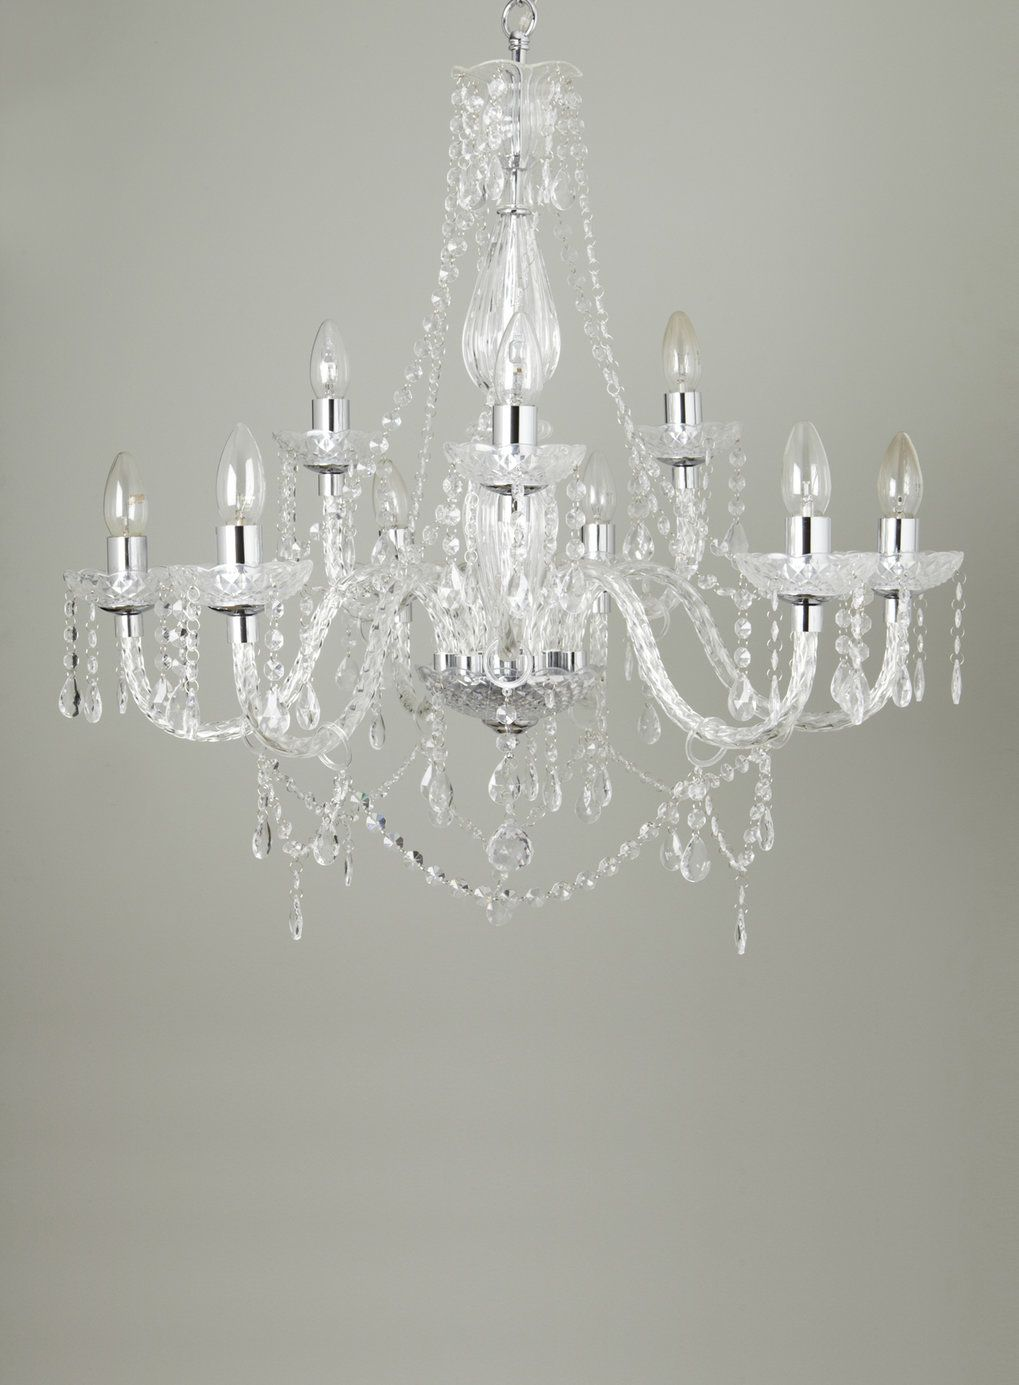 Chrome Bryony 9 light Chandelier - Chandeliers - Ceiling Lights ...